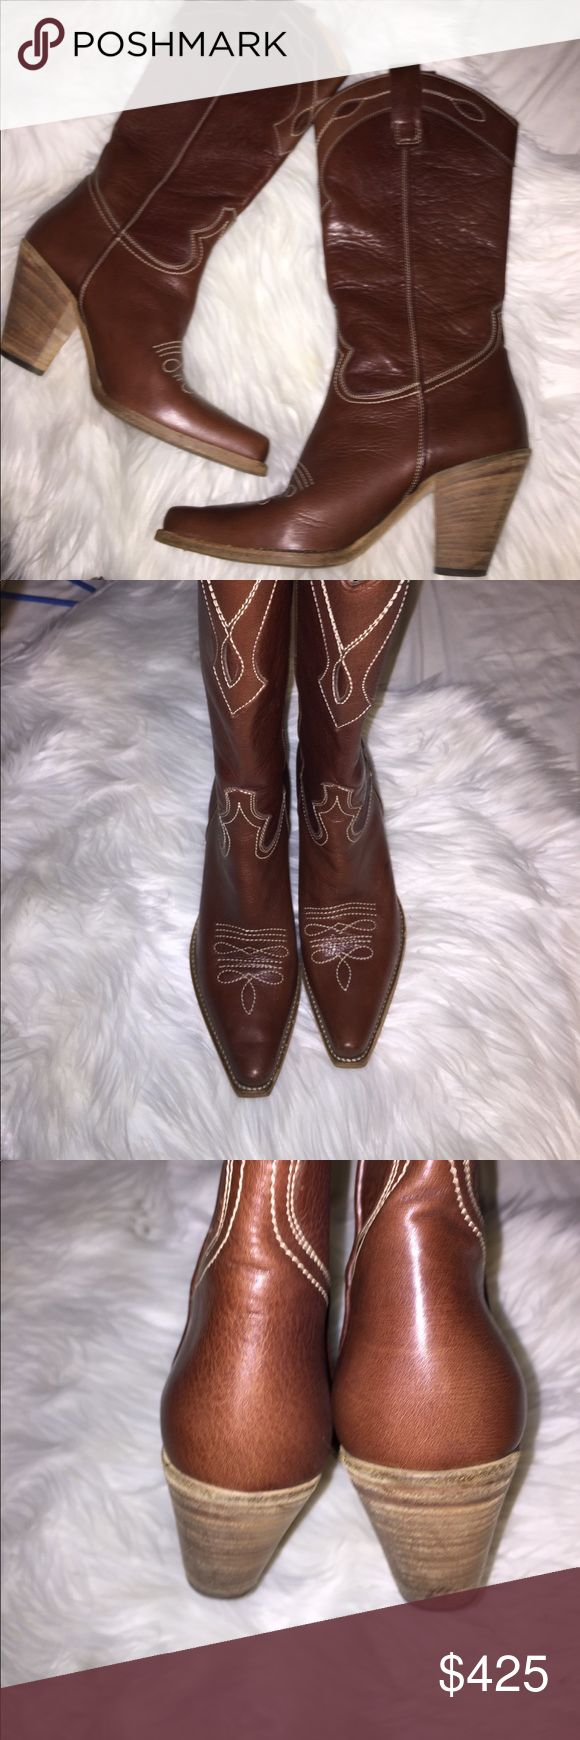 Barney&New York Boots Best pair of boots I've ever had. Debated on if I wanted to list these I have wore these maybe 2 or 3 times. They are a size 39. I'm a size 7 and they fit me good. Could fit a half bigger possibly. Beautiful cowgirl boots Italian leather made and will go with so much but if I sale them for the right price or trade for something I just can't turn down then I'll let them go. They are so comfortable and so stylish. Tv $650 Barneys New York CO-OP Shoes Heeled Boots